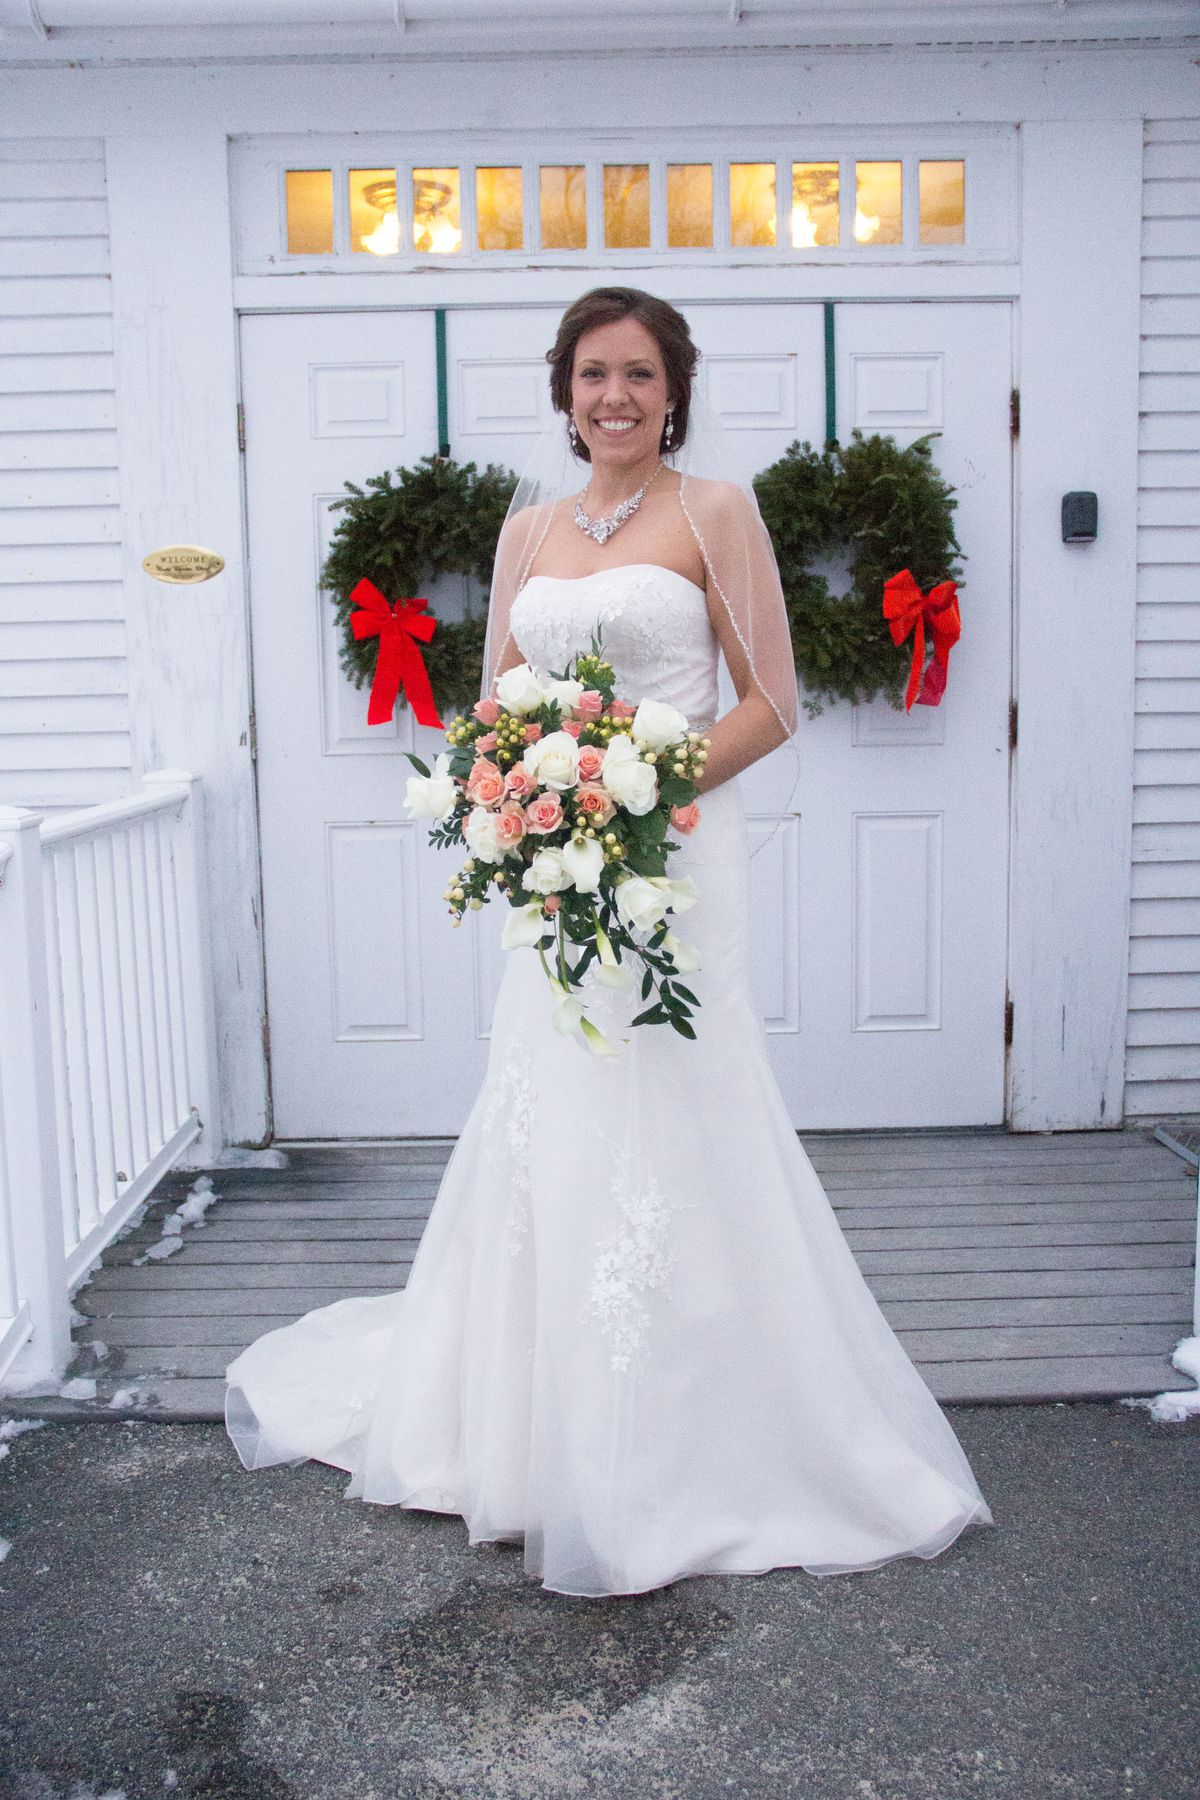 Jenna Corey In Her Hussey's Wedding Gown Photo Hillary Rae Photography €�: Wedding Dress Booze Funny At Websimilar.org